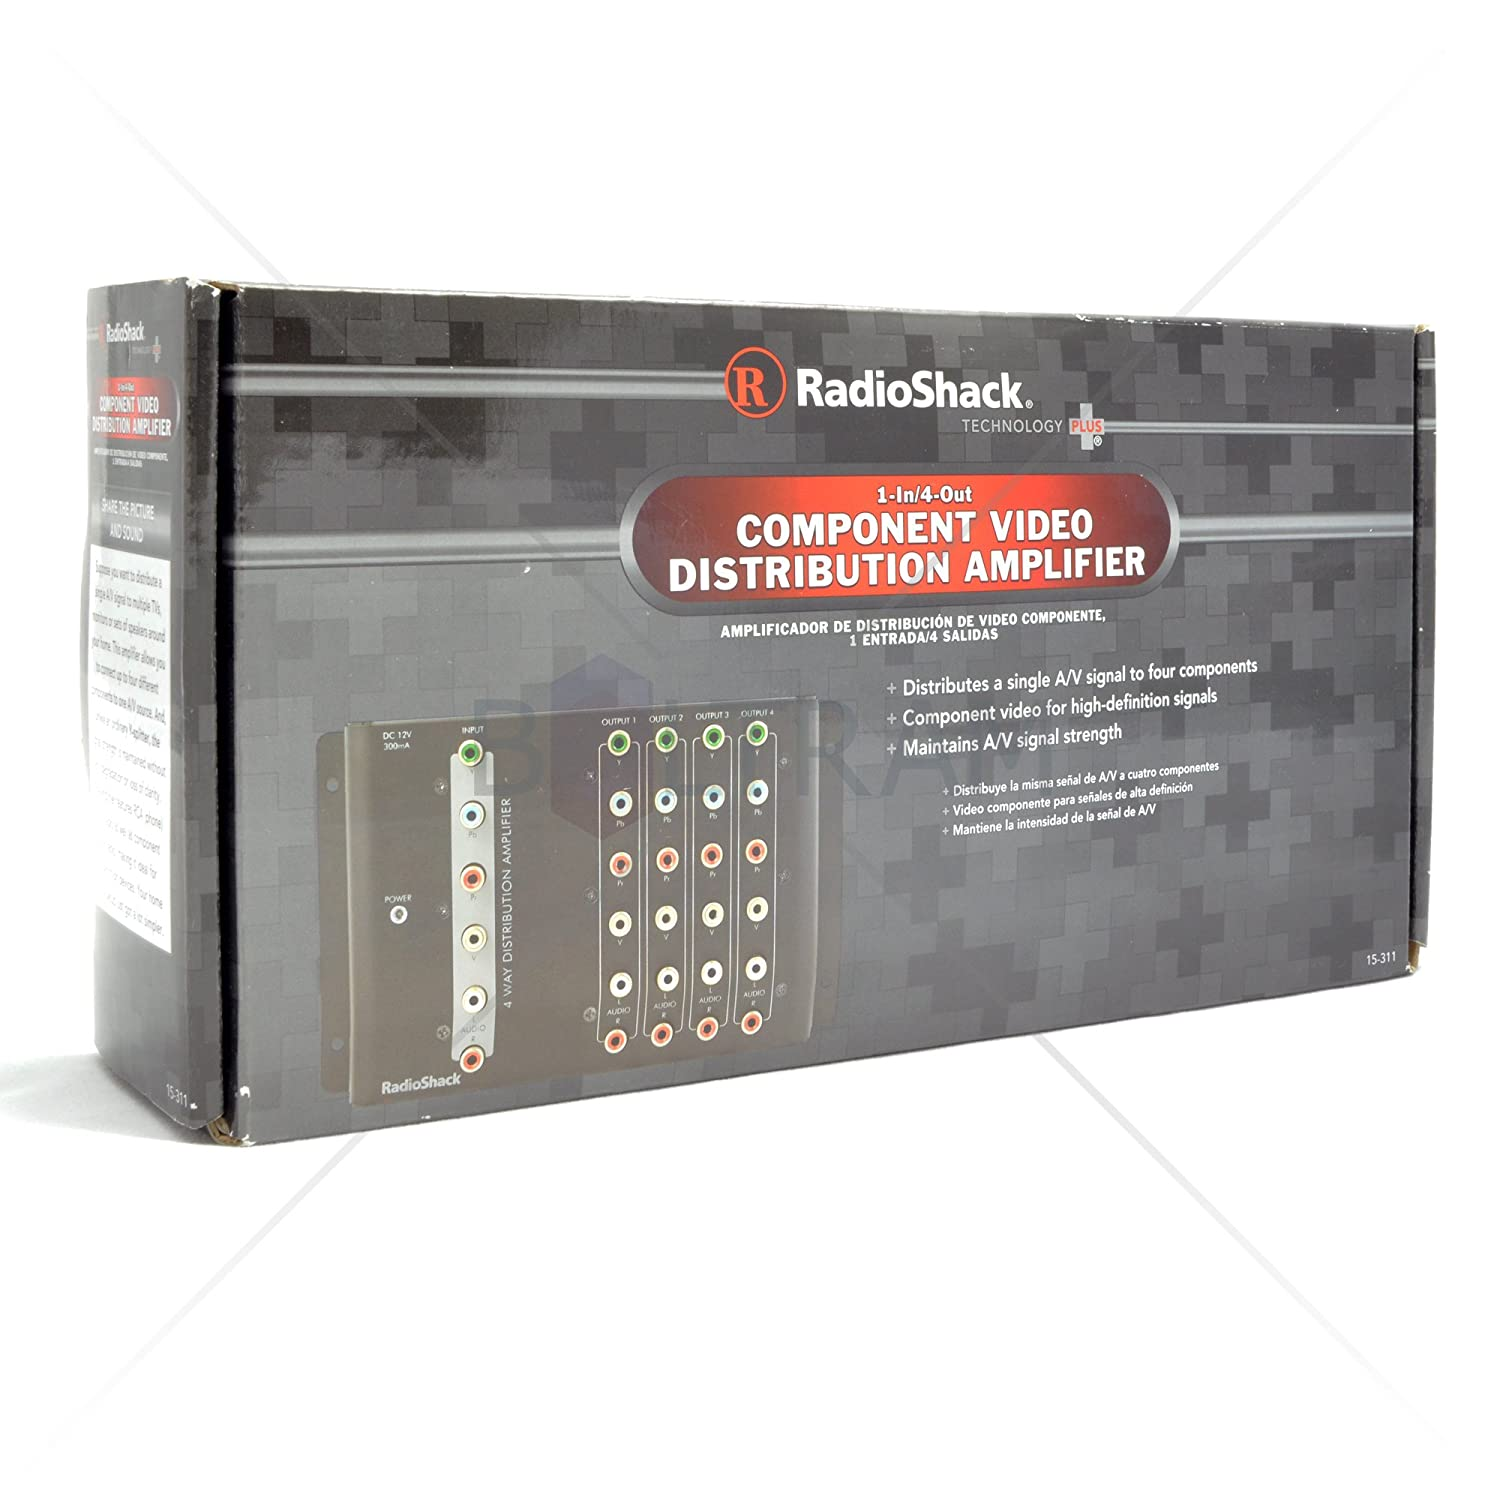 Amazon.com: RadioShack 4-Way Component Video Distribution Amplifier 15-311: Home Audio & Theater